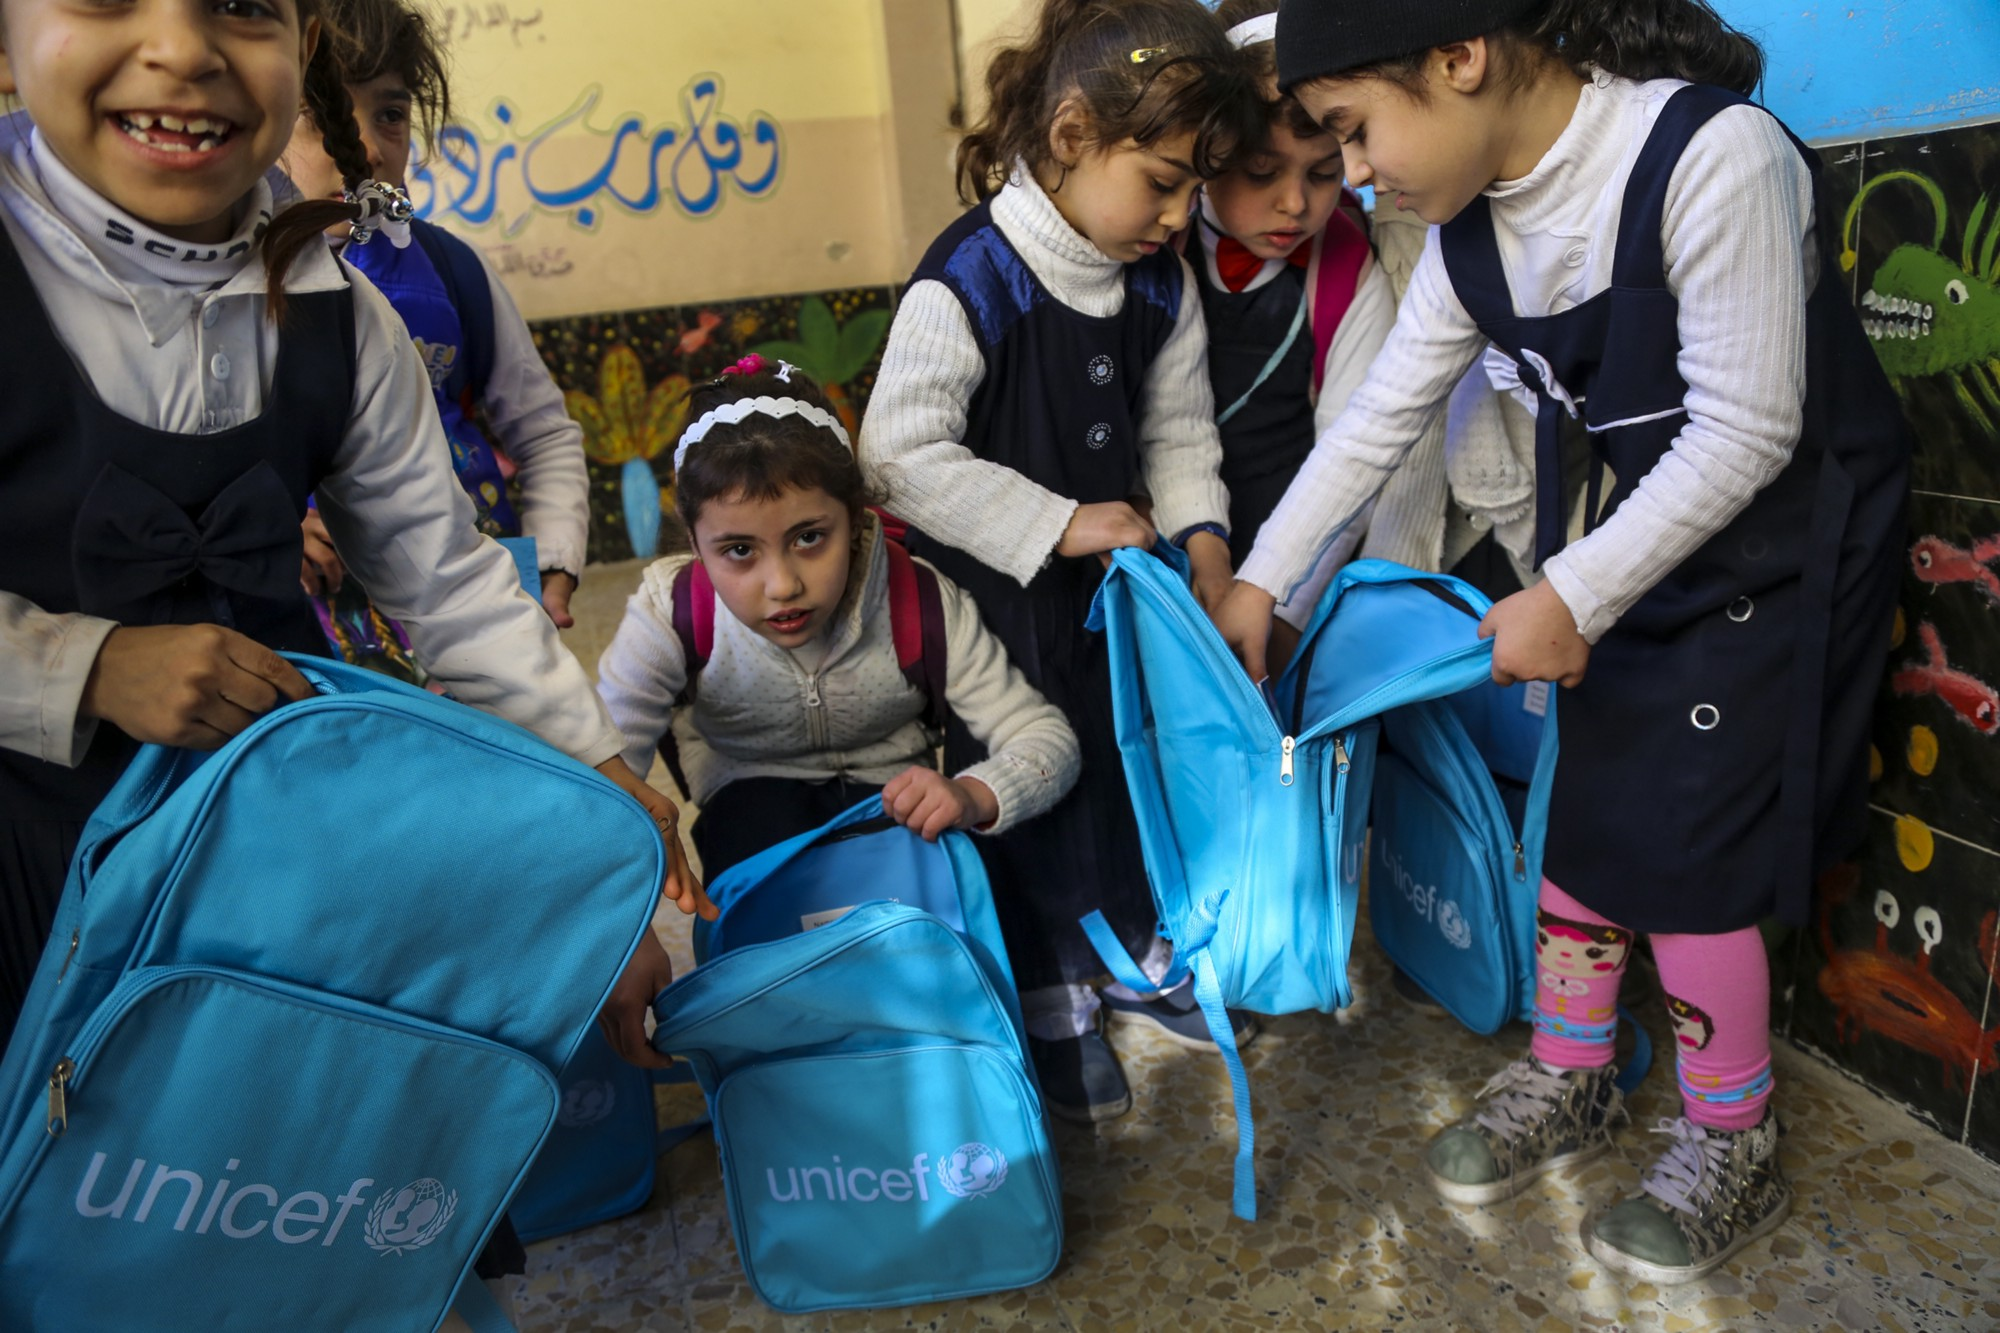 UNICEF helps 682,000 children access education in Iraq in 2016